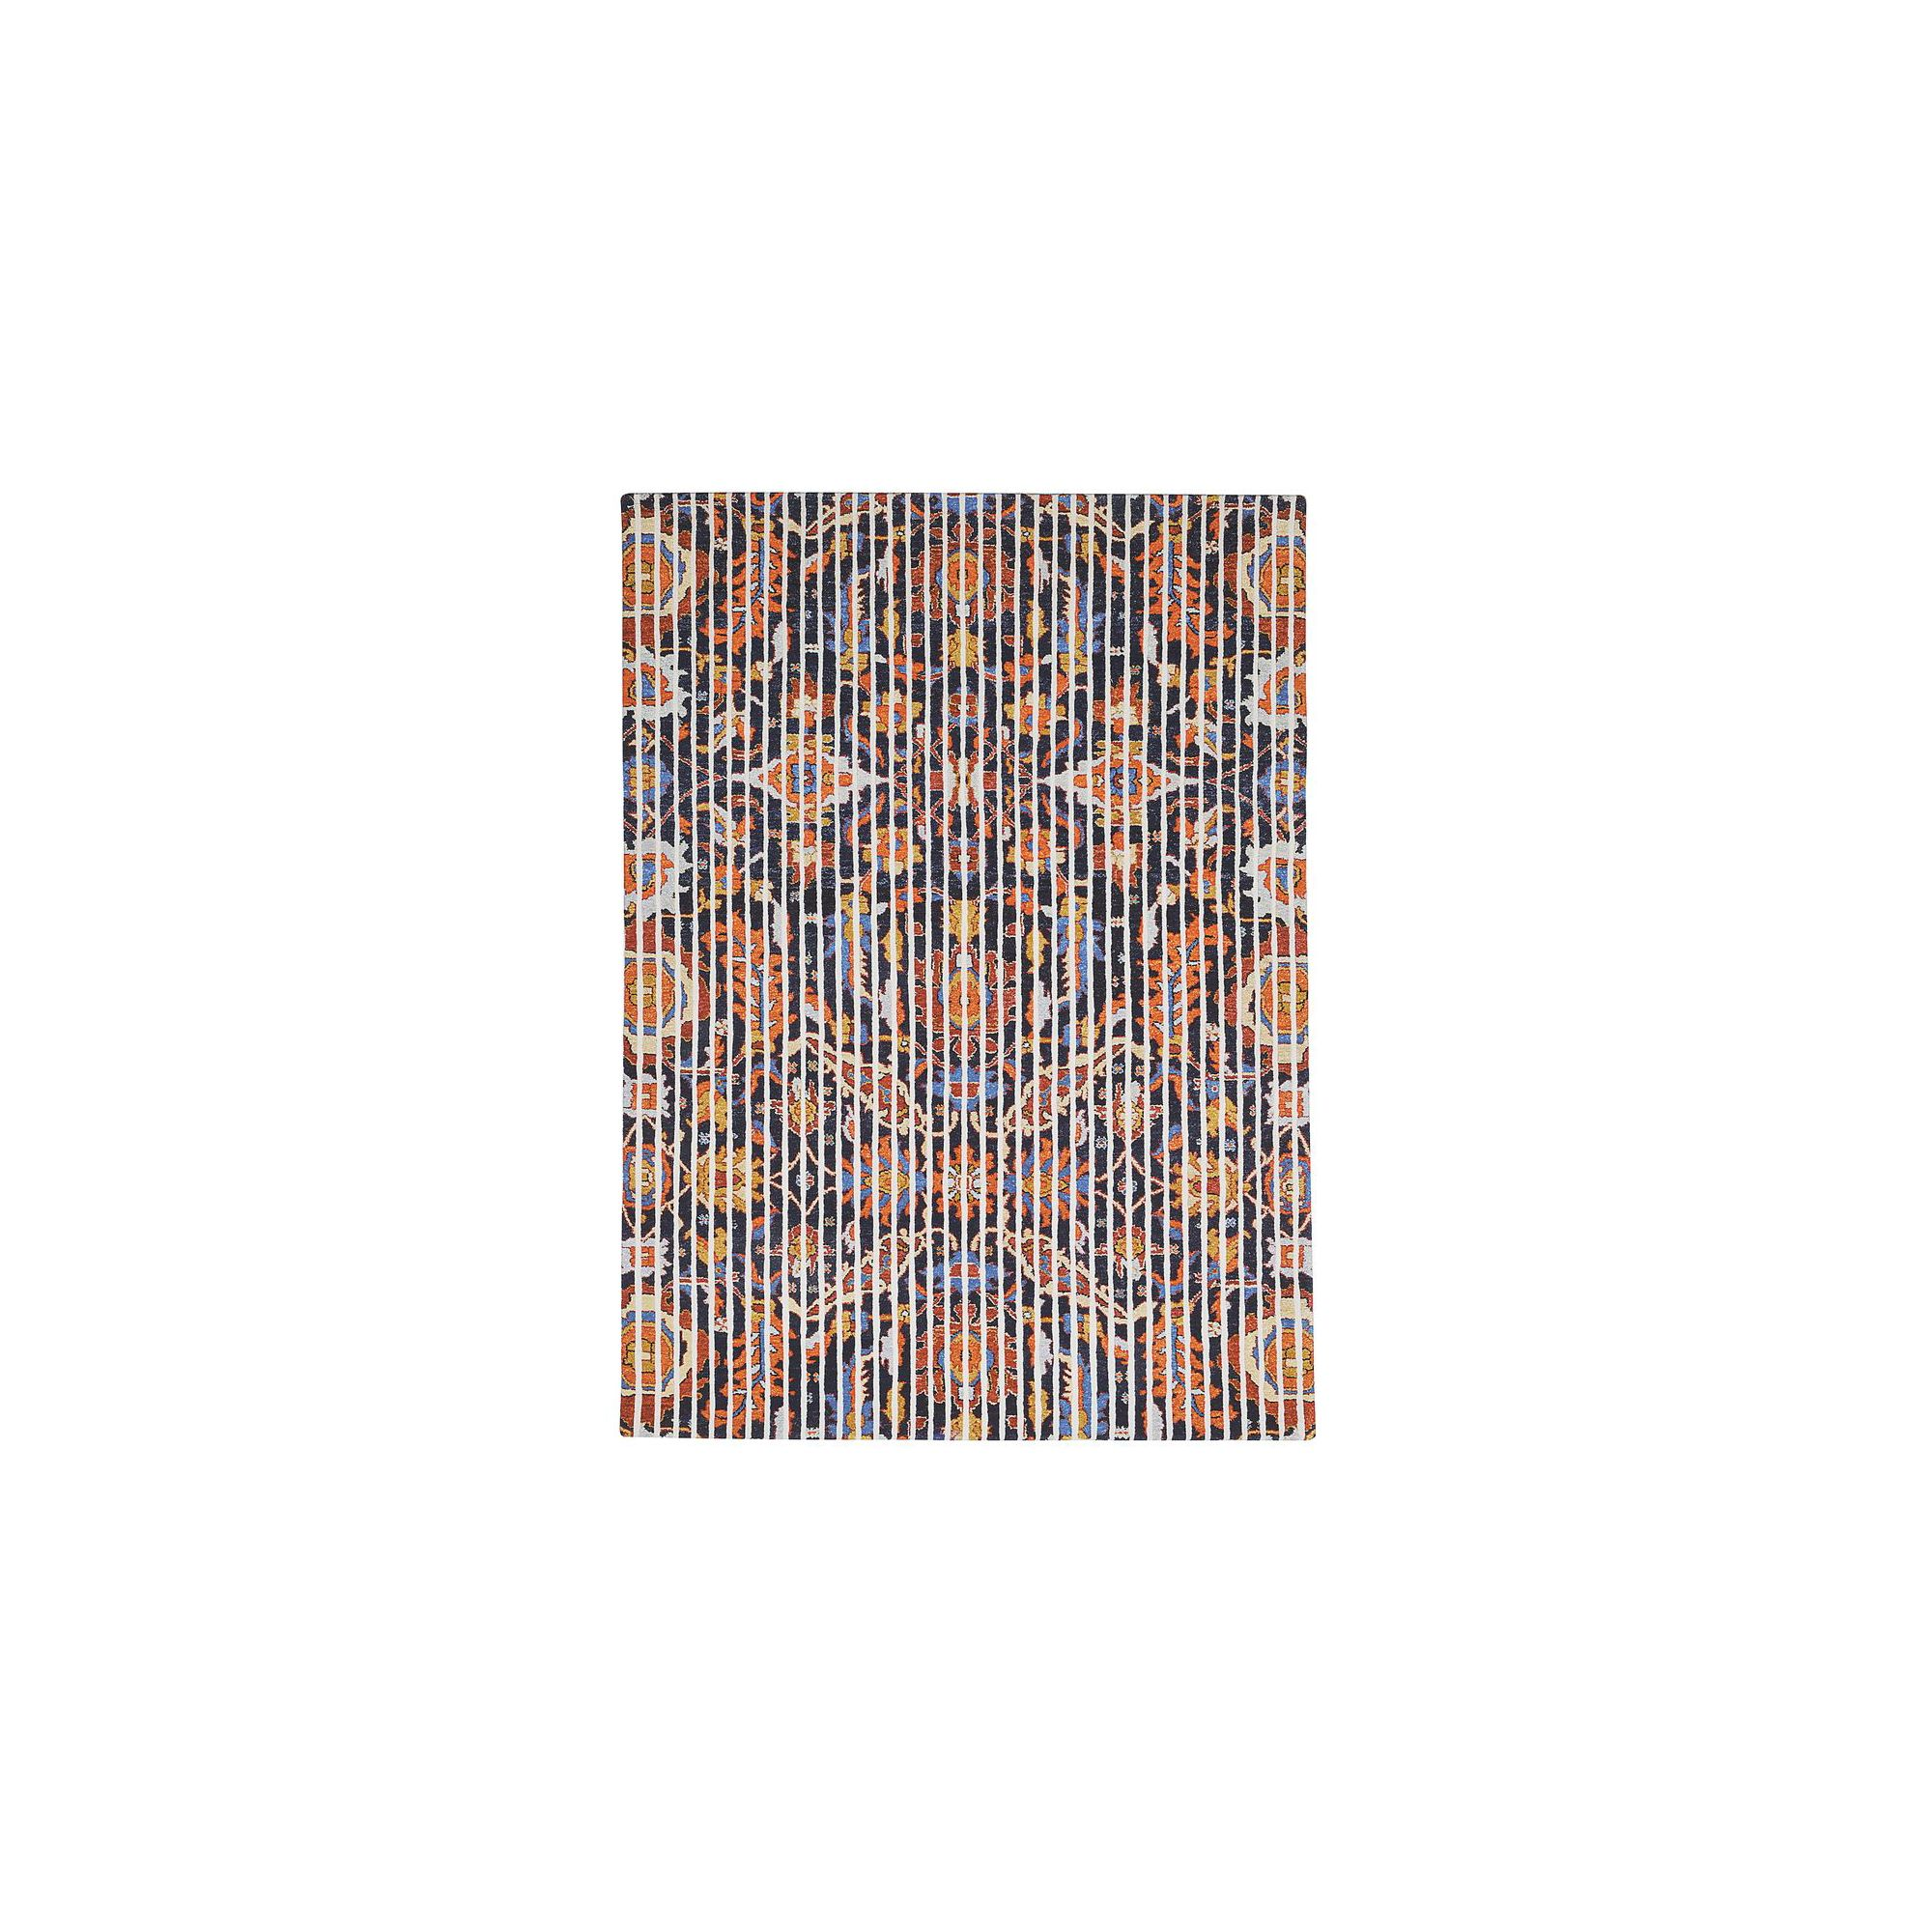 I + I Editions Persian Lines I Knotted Rug - 240cm x 170cm at Tesco Direct